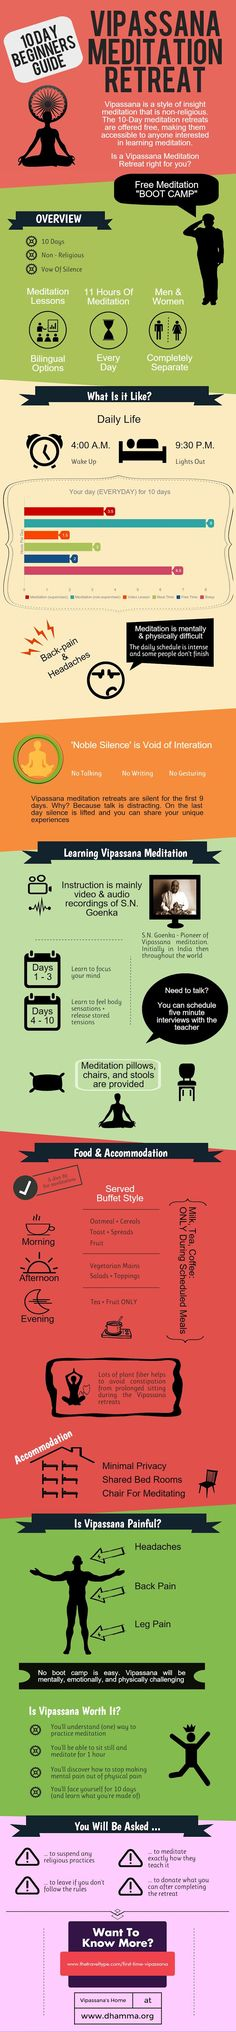 Thinking of a Vipassana Retreat? Check this meditation infographic and guide and…